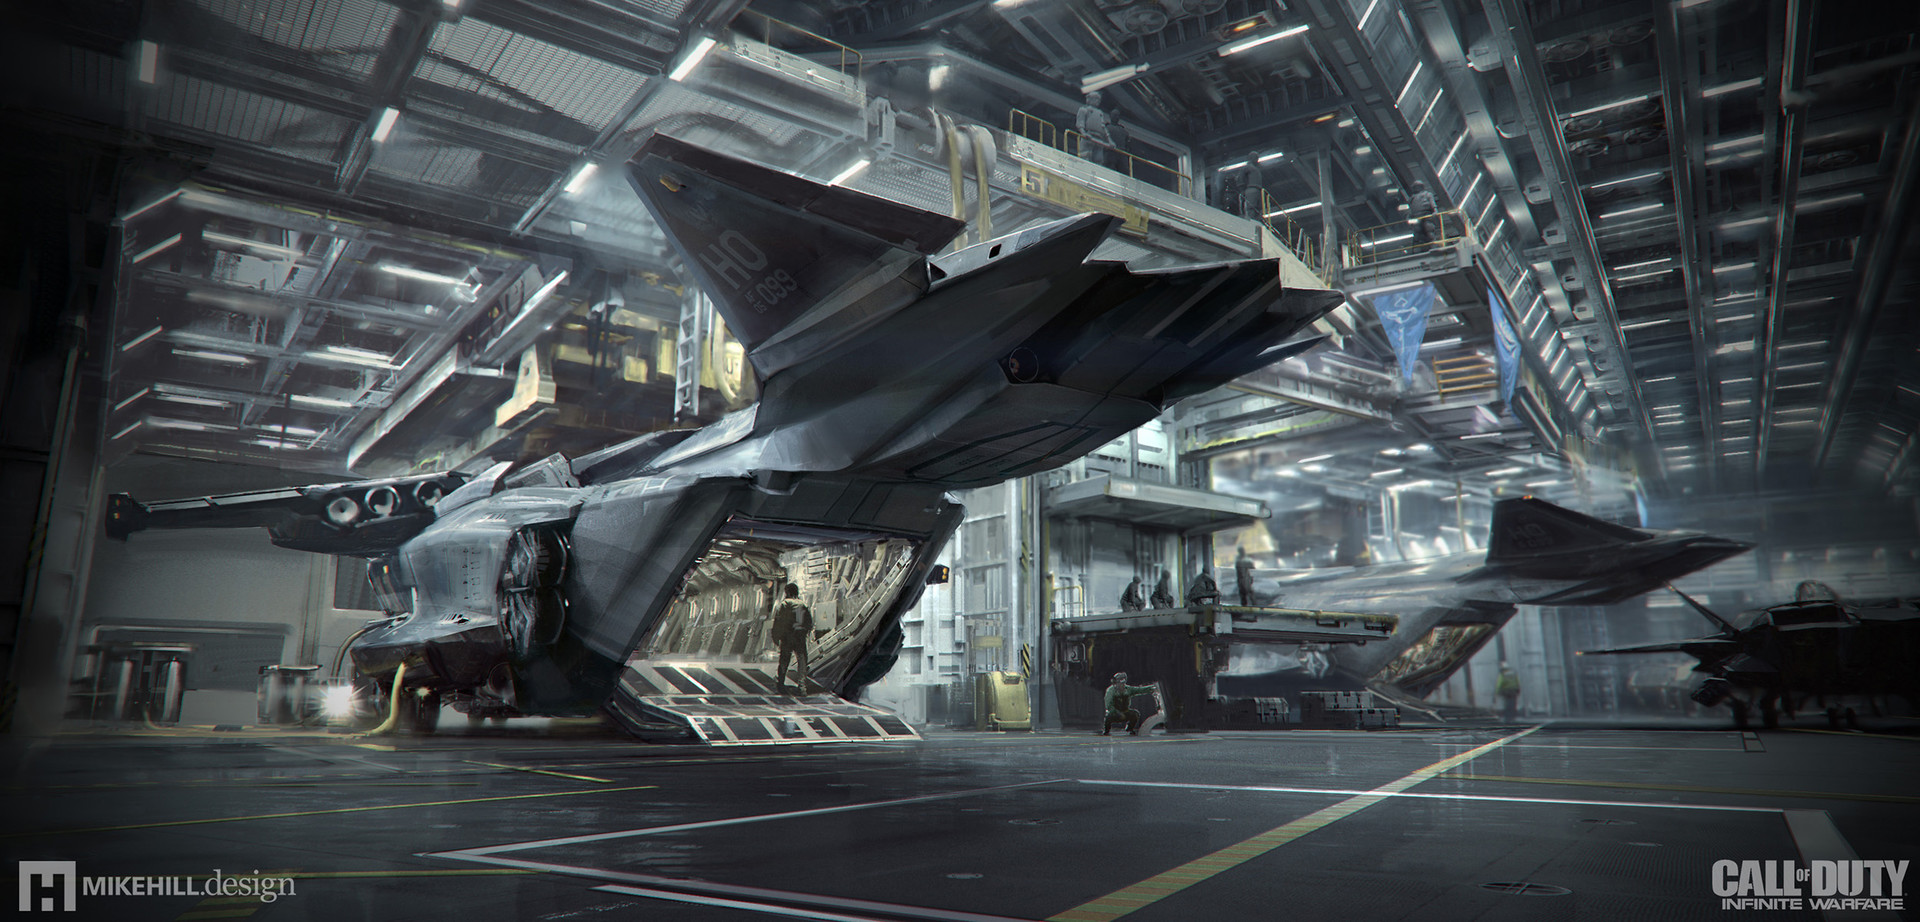 Call of Duty: Infinite Warfare Concept Art by Mike Hill